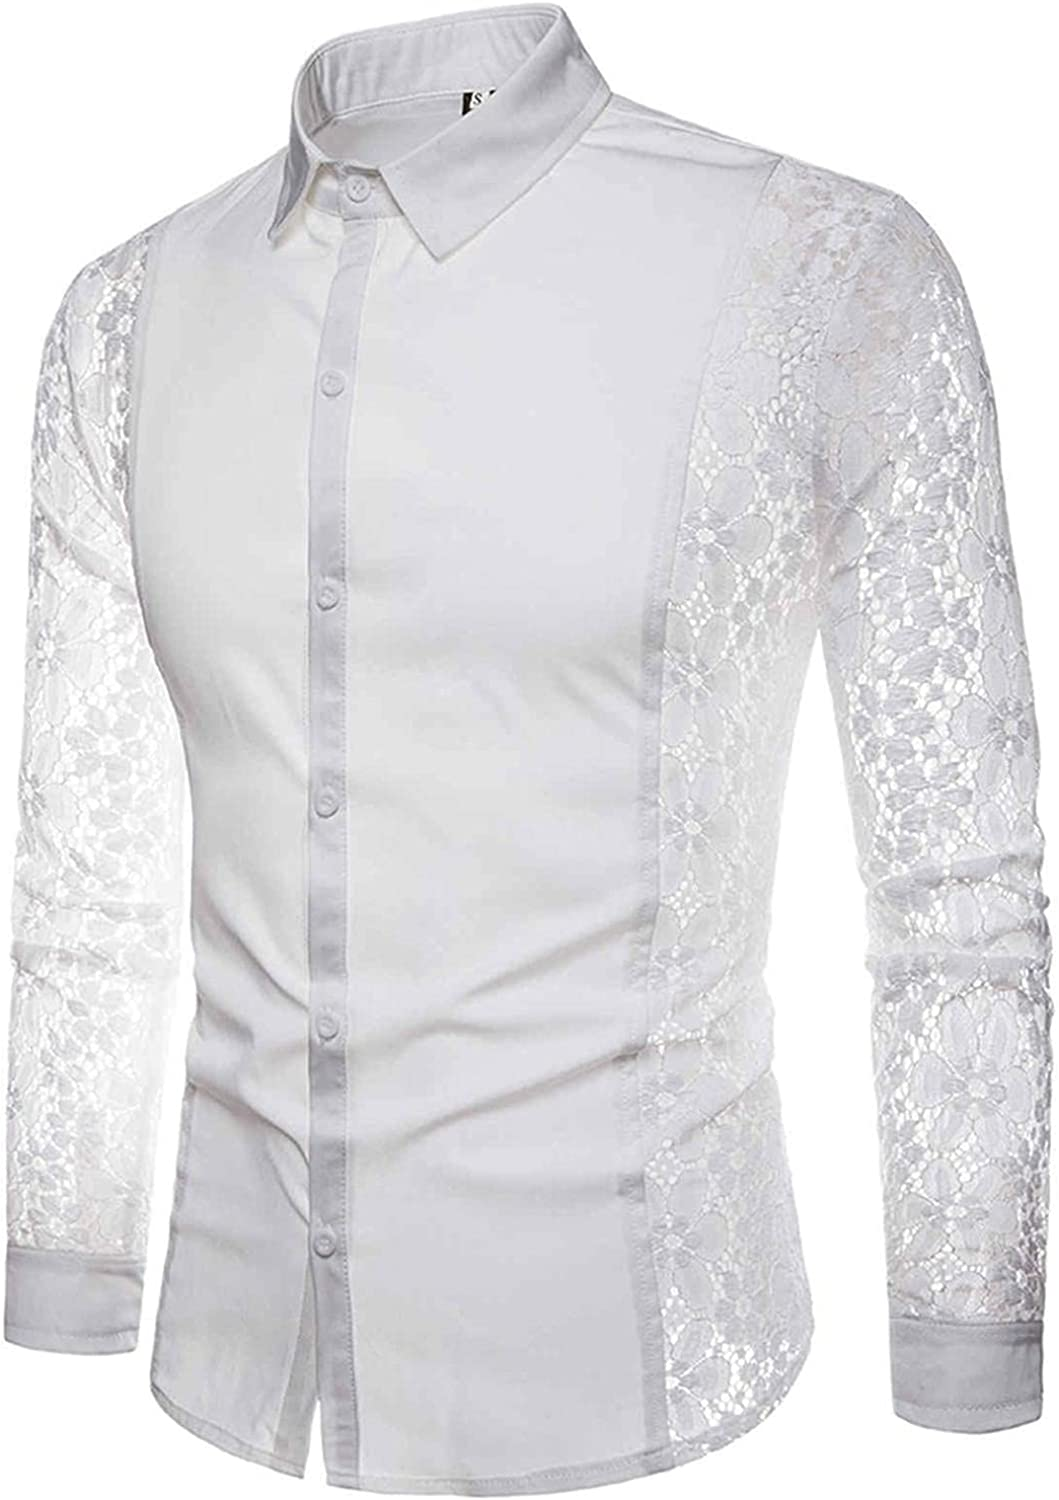 Mens Mesh Shirts Long Sleeve See Through Flower Button Down Sweatshirts Style Fishnet Hollow Lace Blouse Tops